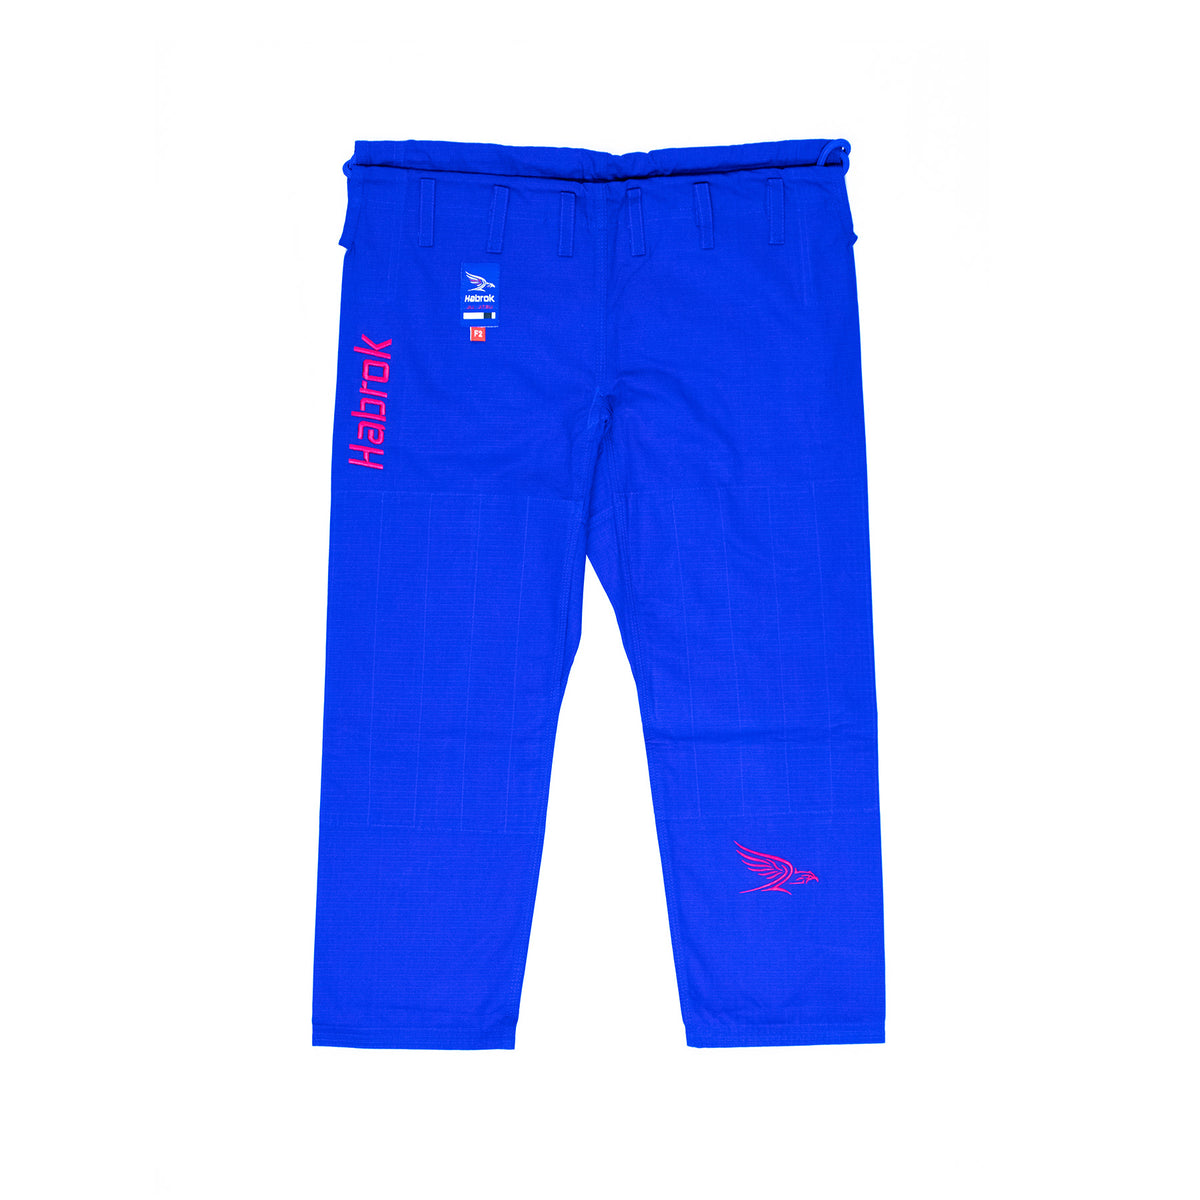 Leve 3.0 | Premium Ultra Light | BJJ GI | Women | Blue